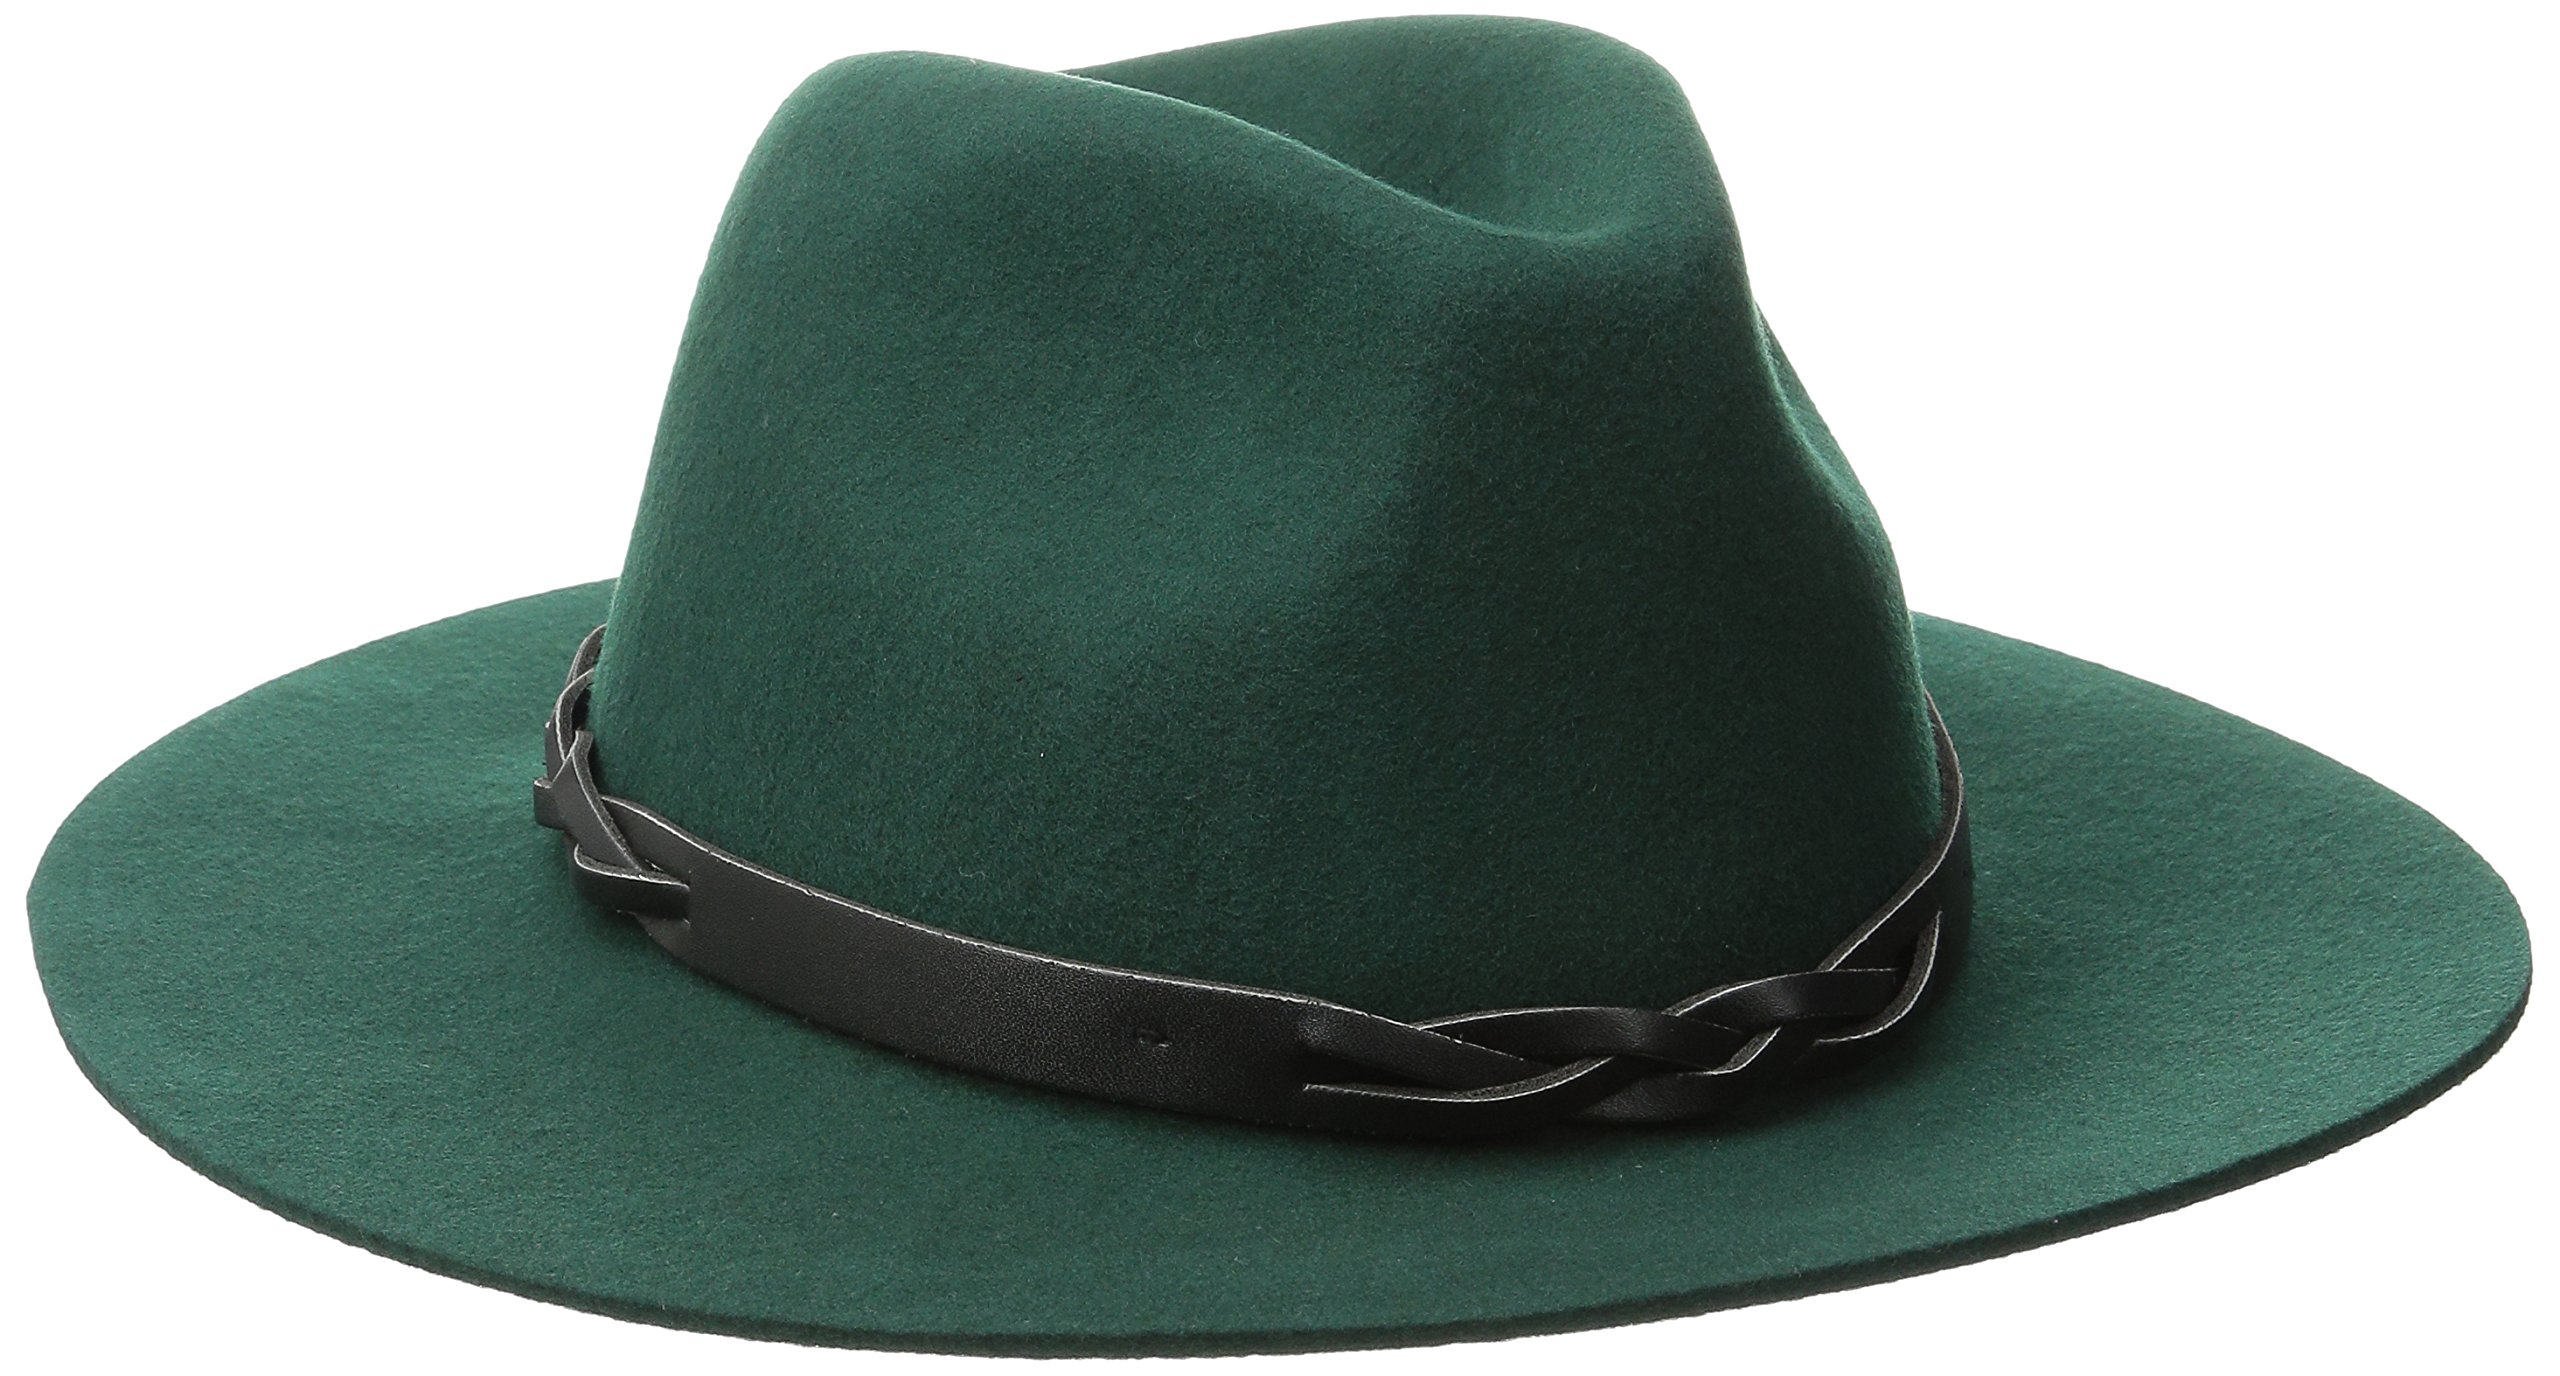 San Diego Hat Company Women's Adjustable Fedora with Woven Pu Band and Raw Edge, Spruce, One Size